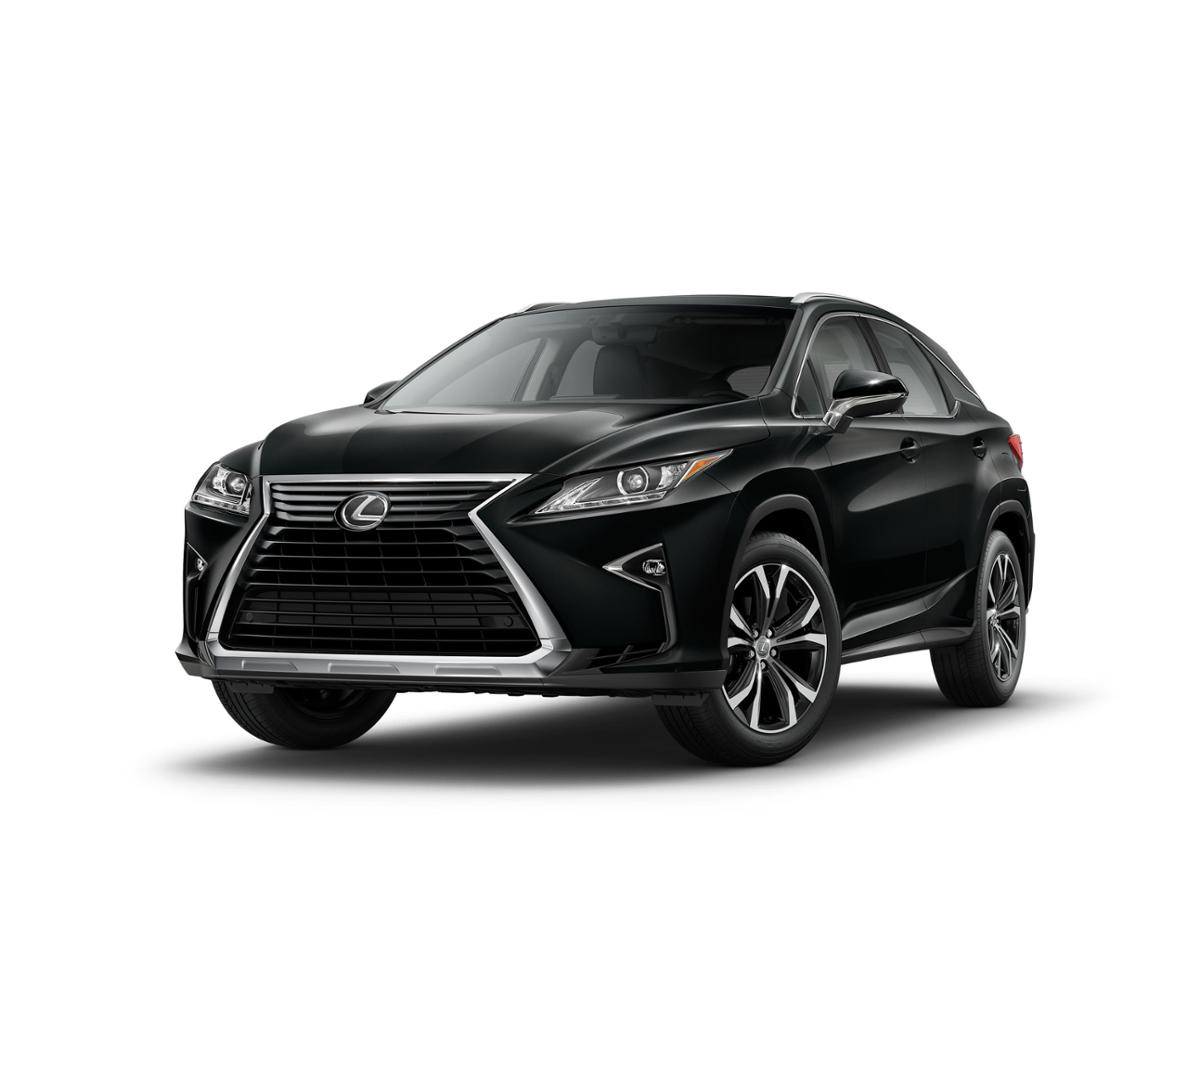 2018 Lexus RX 350 Vehicle Photo in Danvers, MA 01923